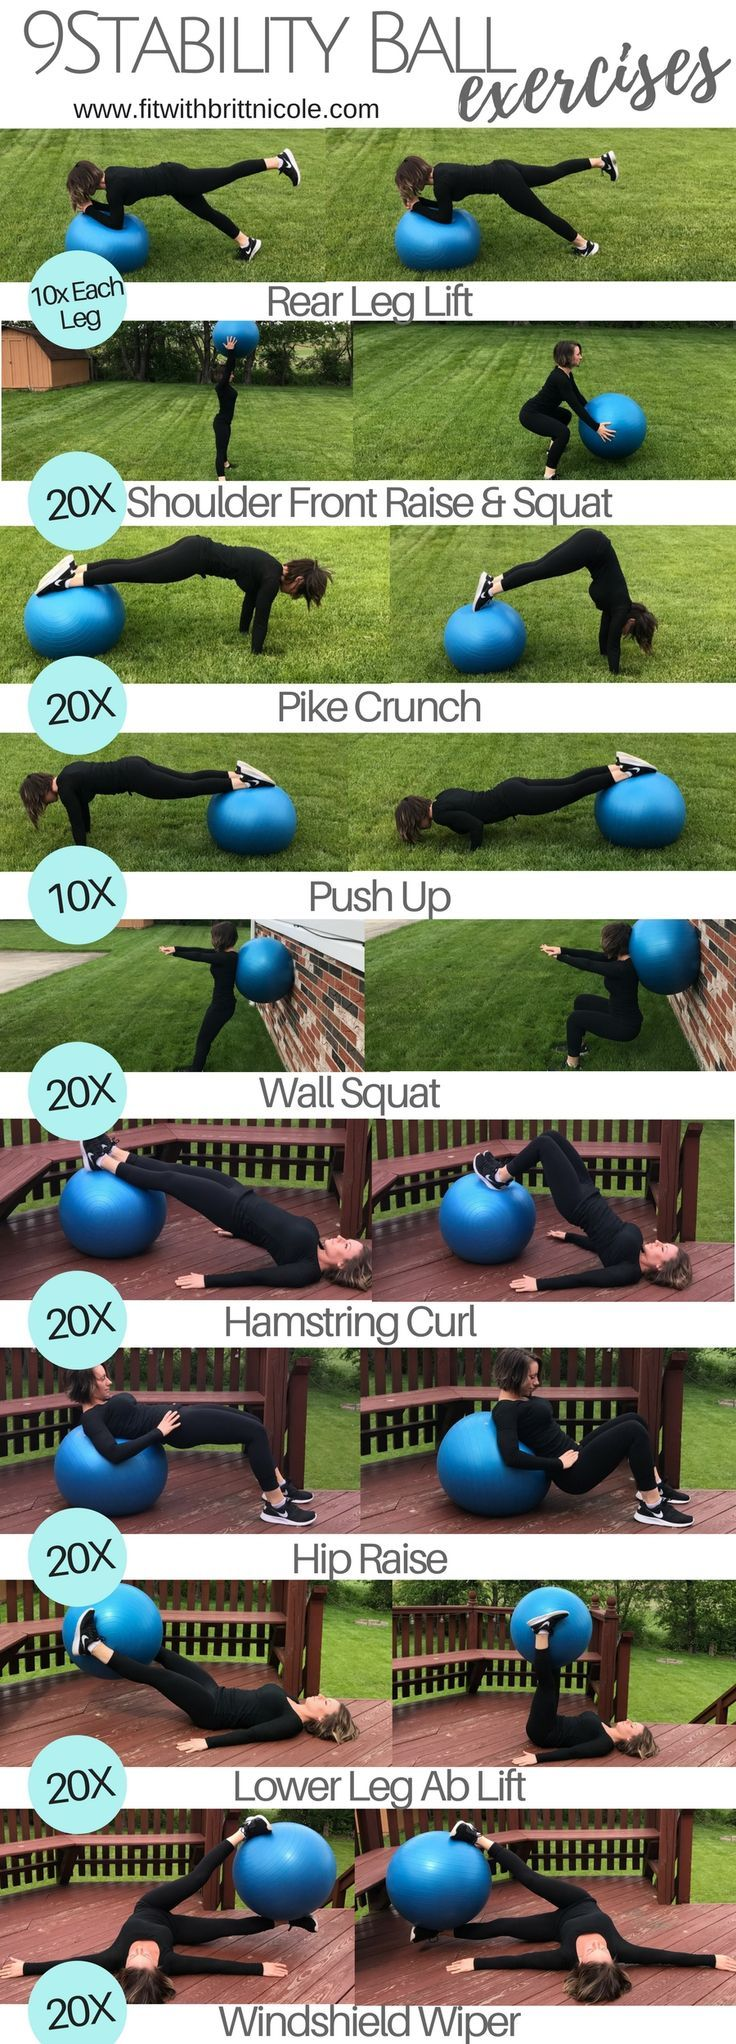 9 Stability Ball Exercises for a 30 Minute Full Body Workout